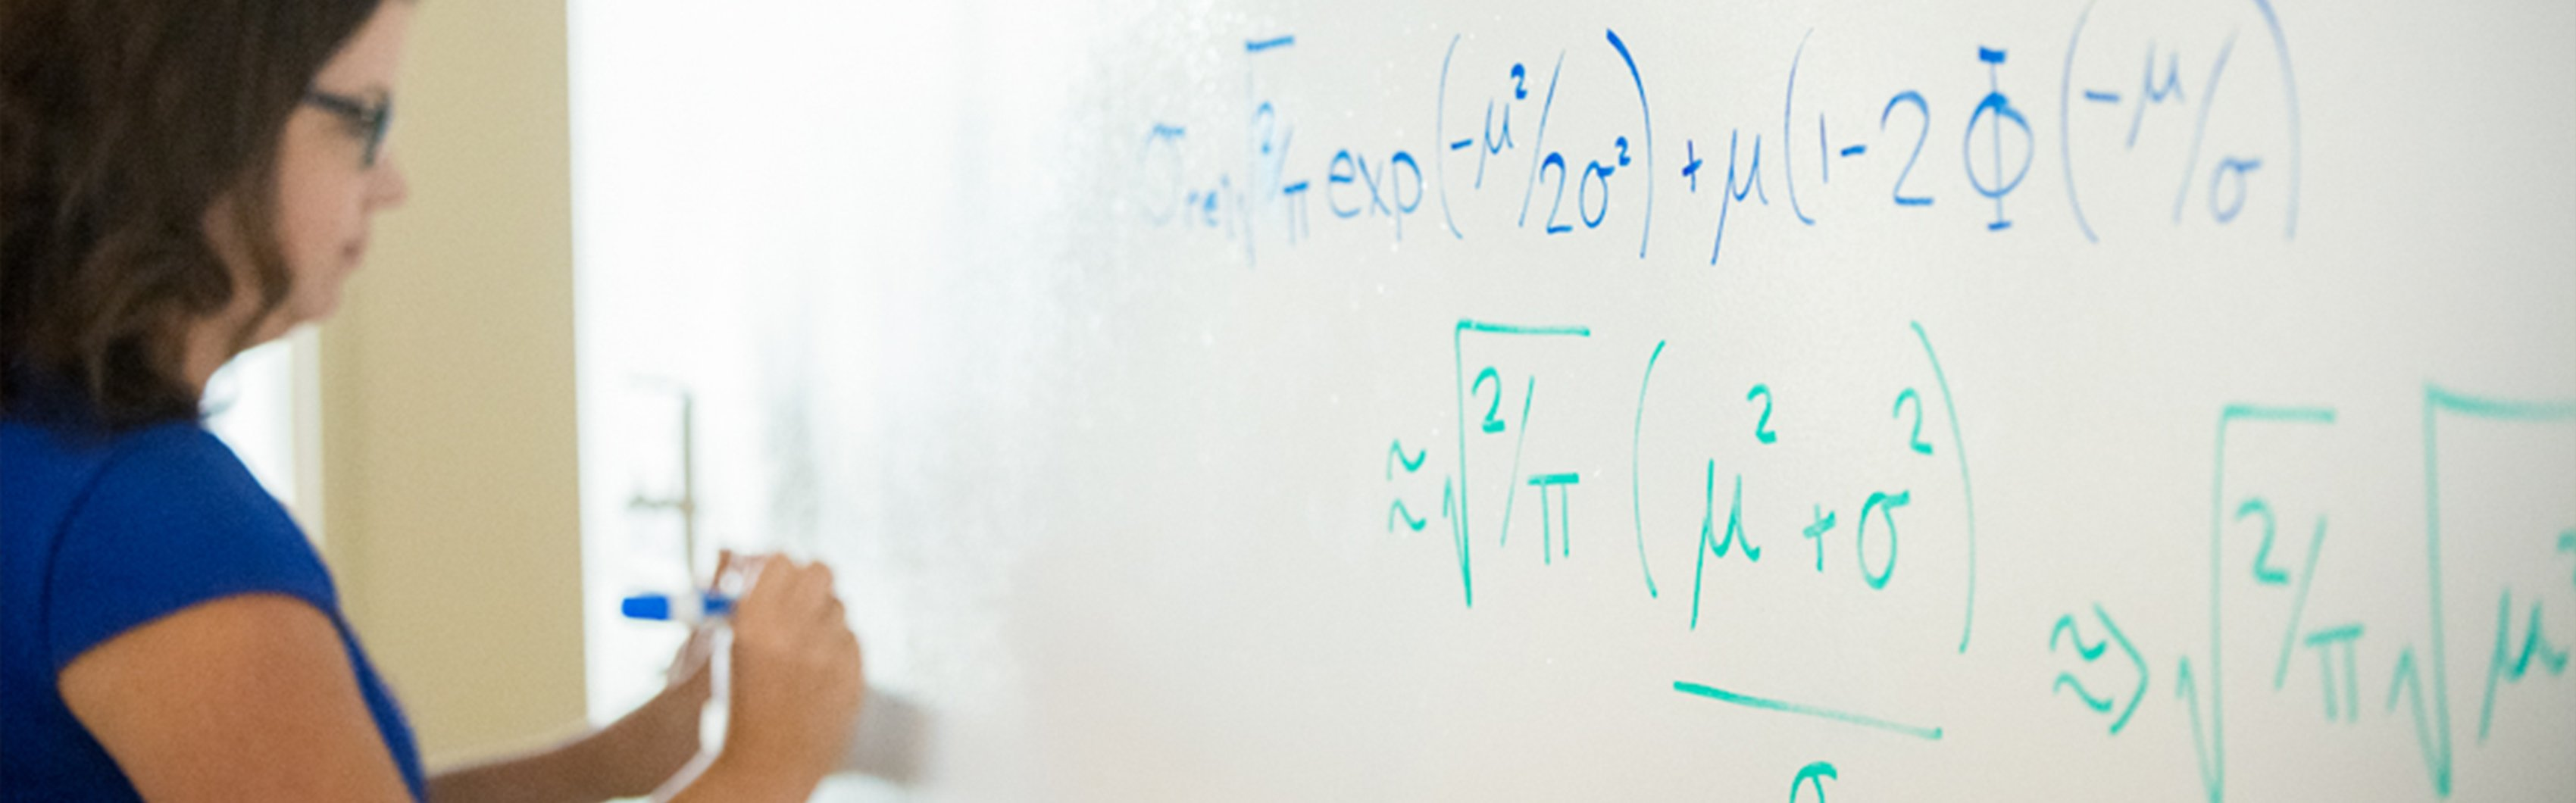 MR at whiteboard with formula